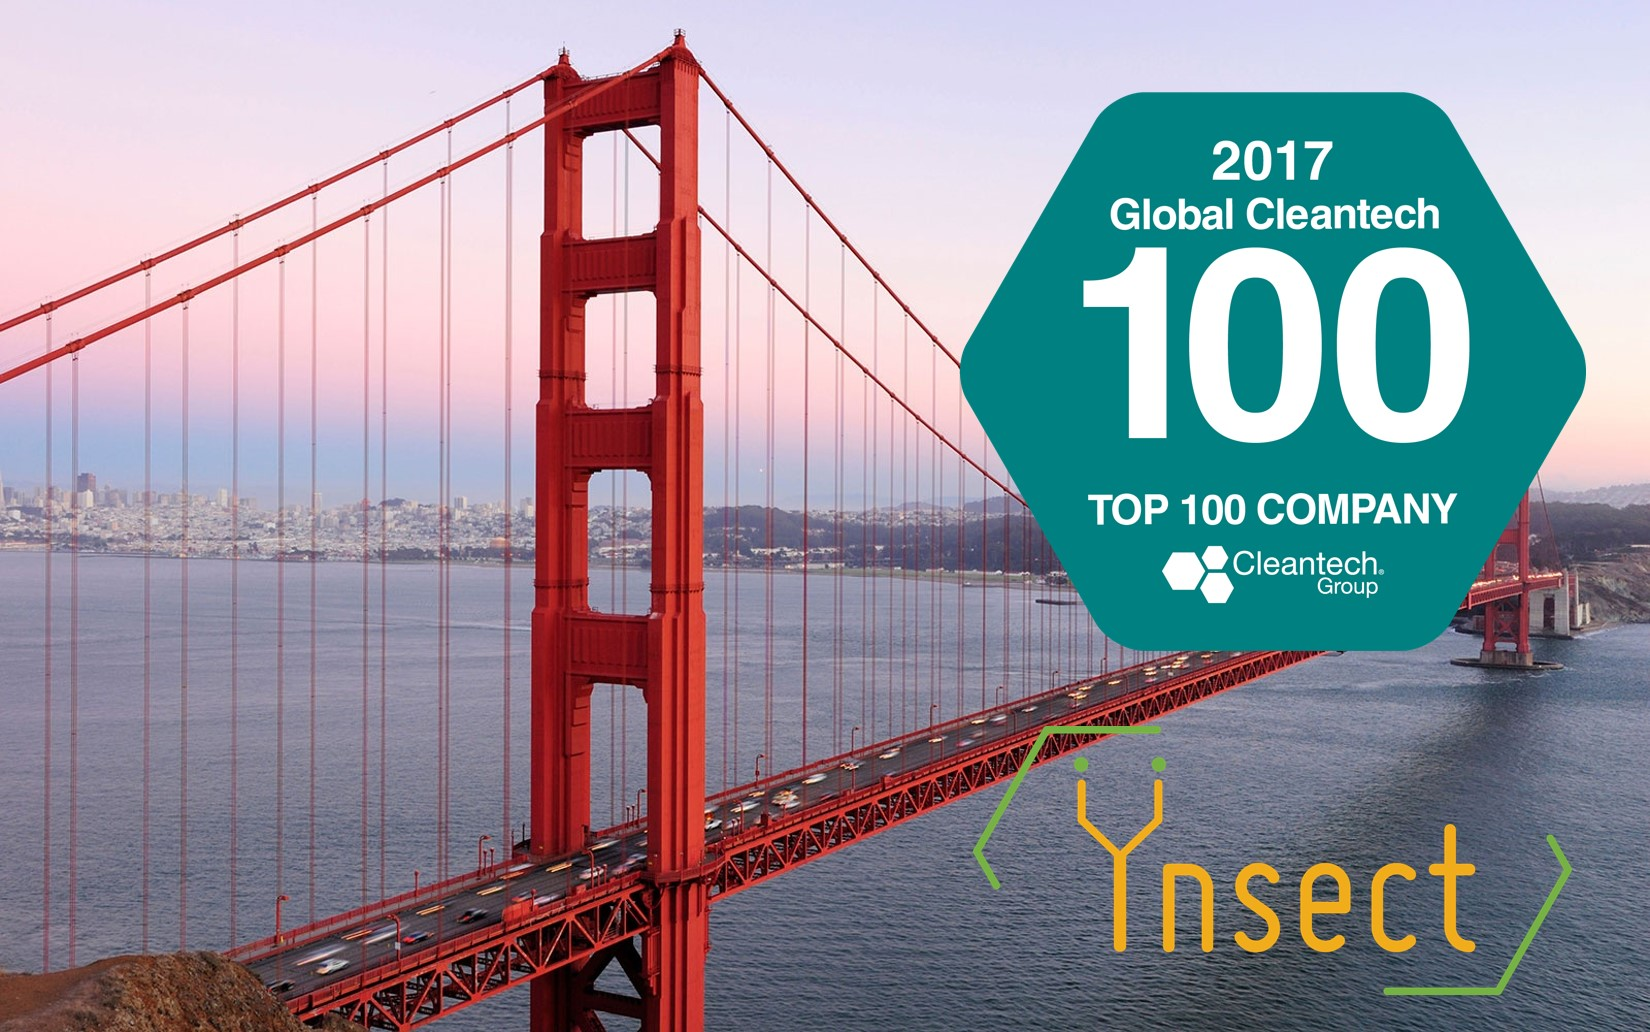 Laureate of the 2017 Global Cleantech 100